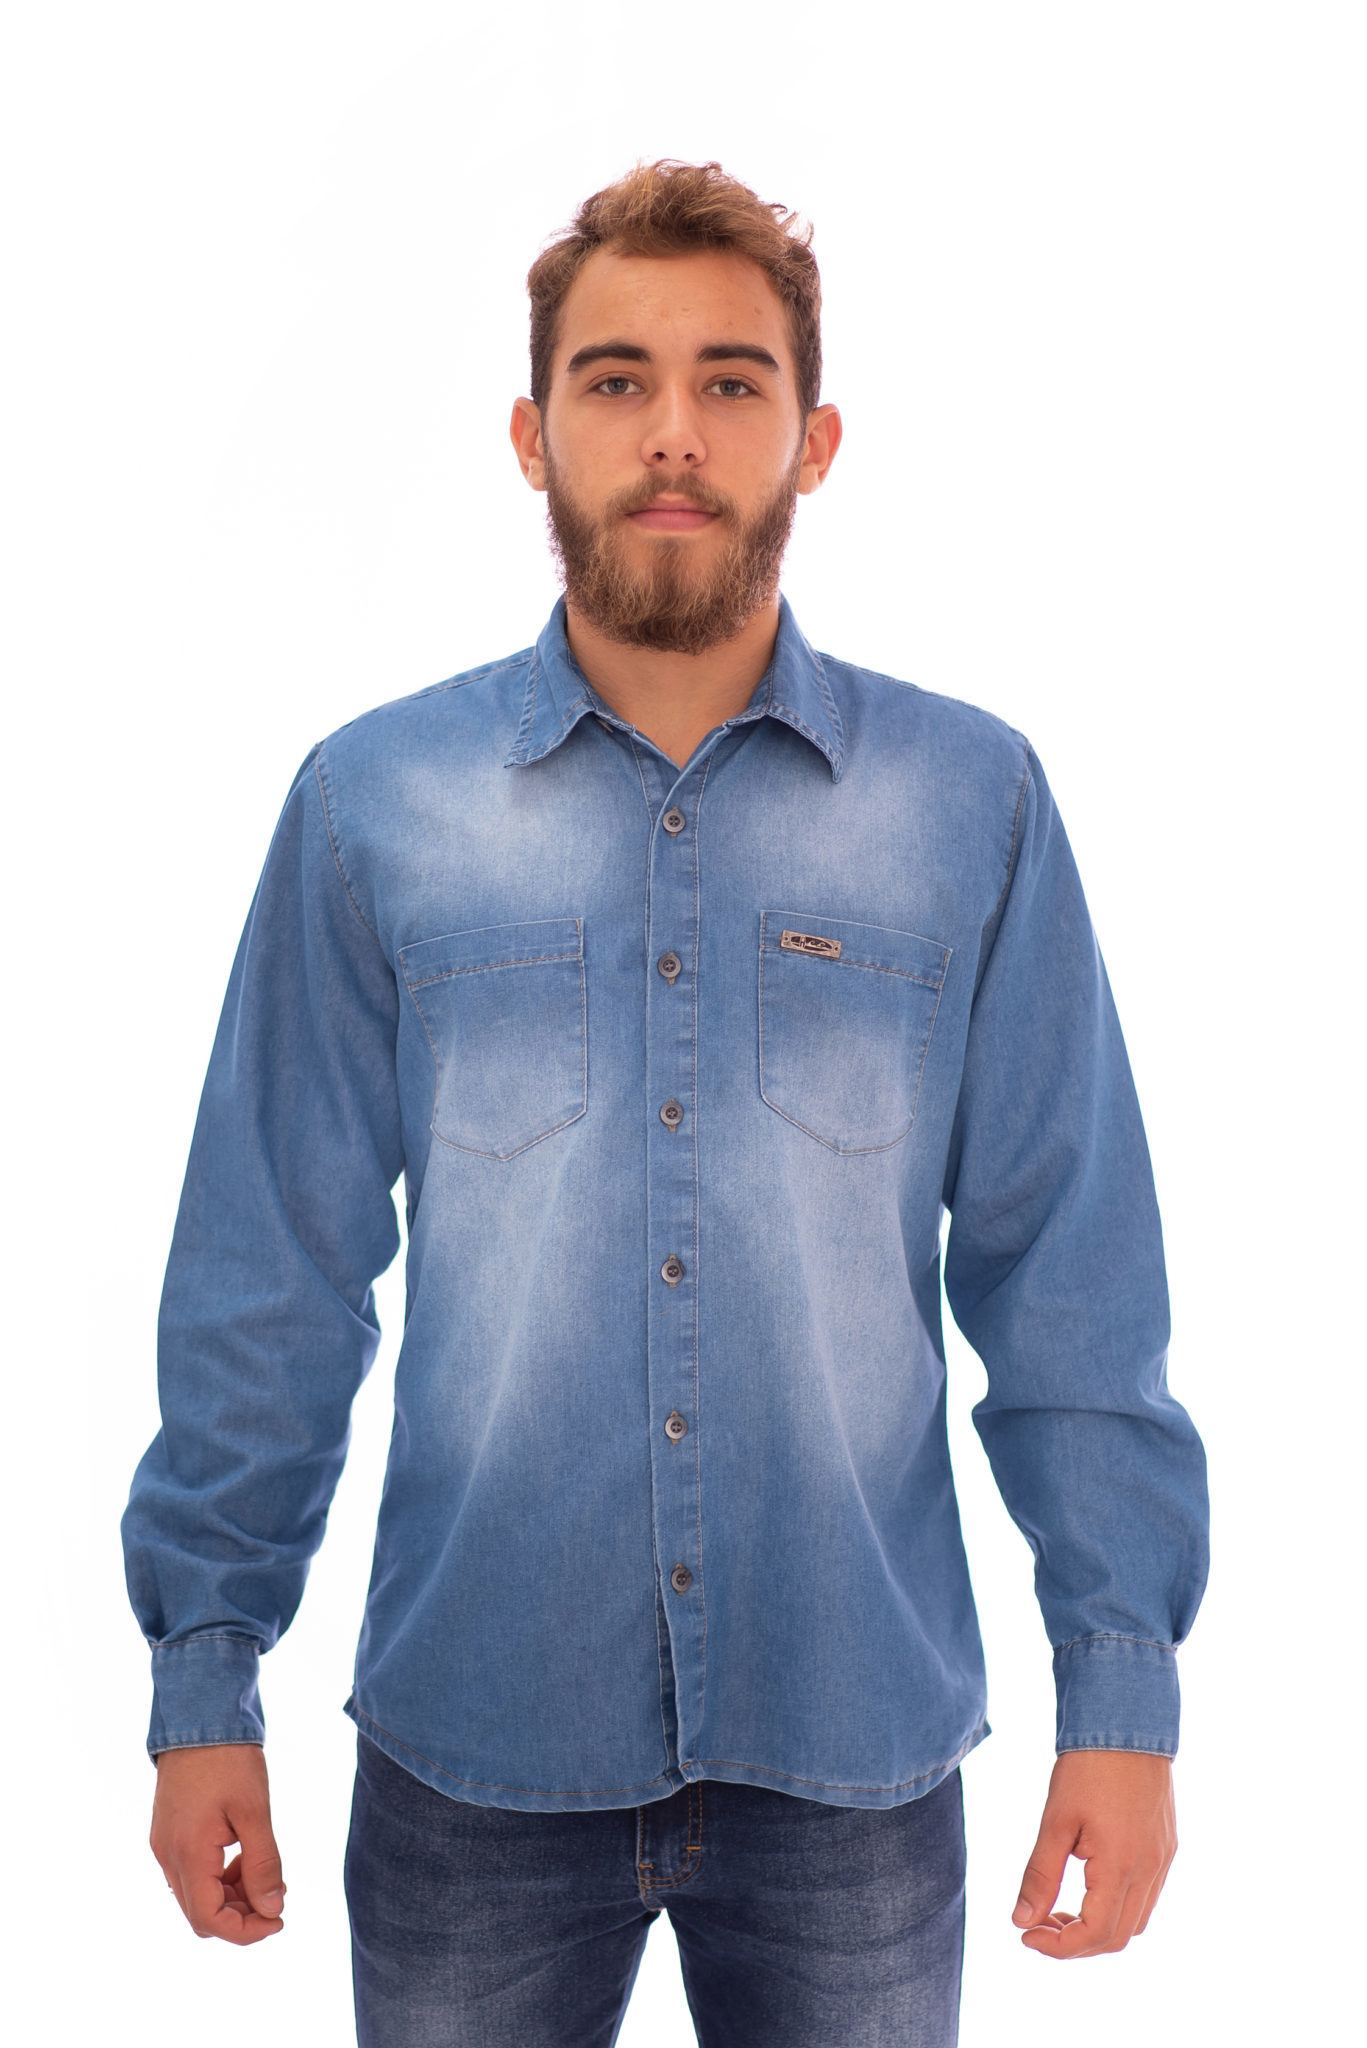 CAMISA JEANS MASCULINA REF. 406